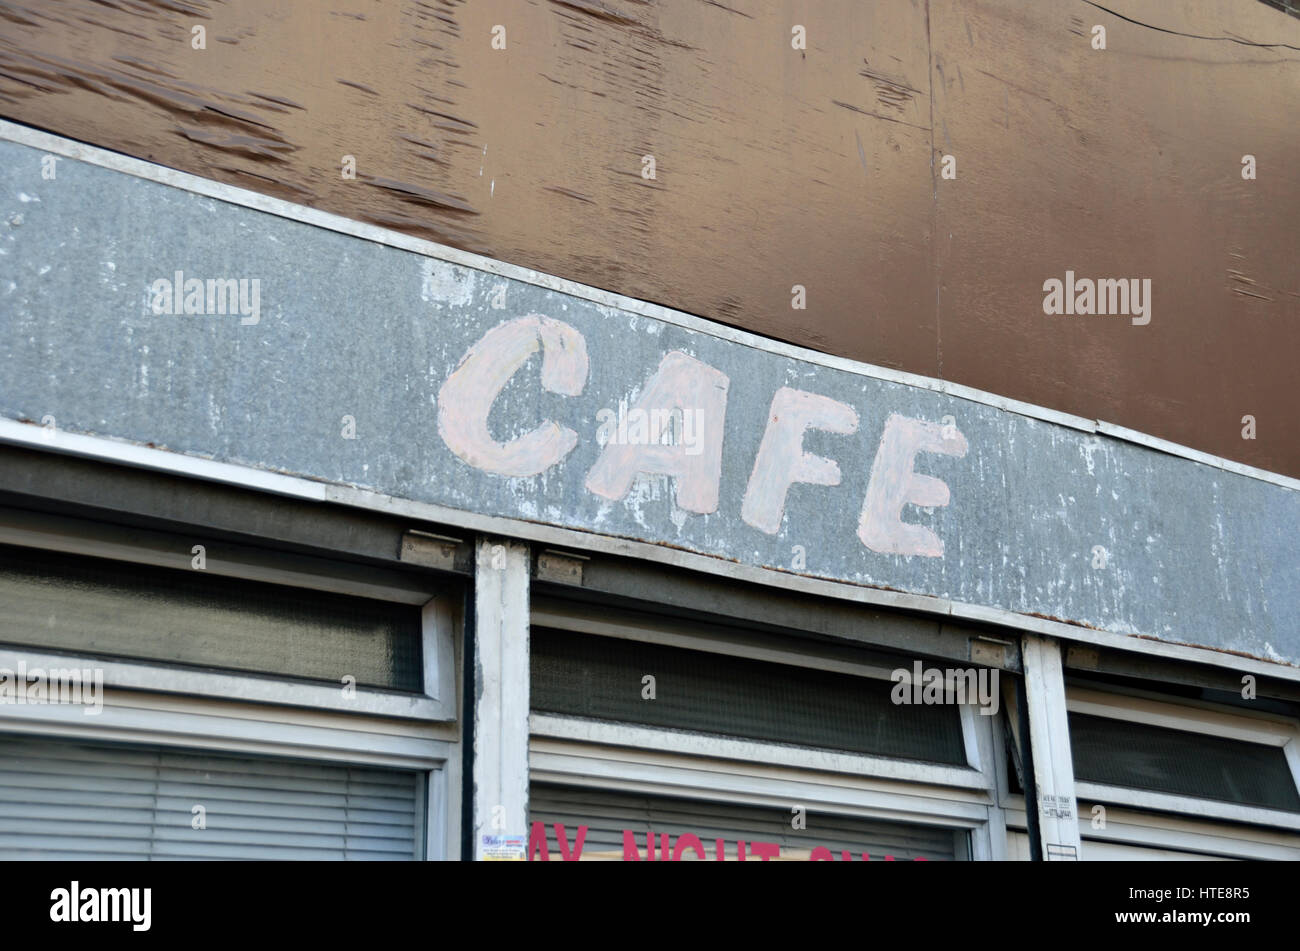 Neglected dilapidated cafe exterior. - Stock Image